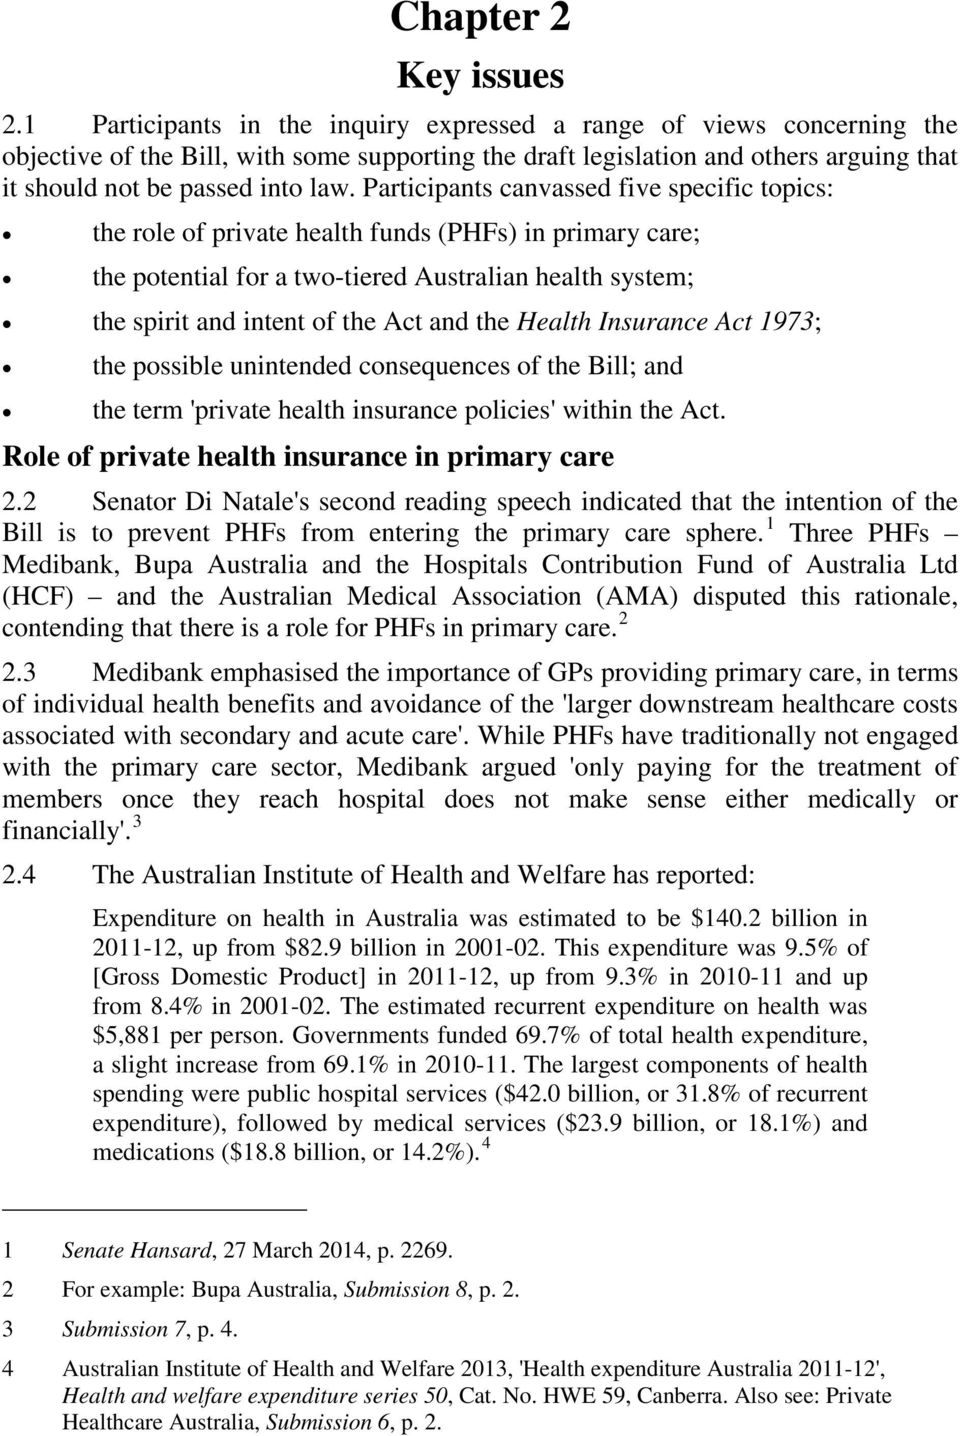 Participants canvassed five specific topics: the role of private health funds (PHFs) in primary care; the potential for a two-tiered Australian health system; the spirit and intent of the Act and the